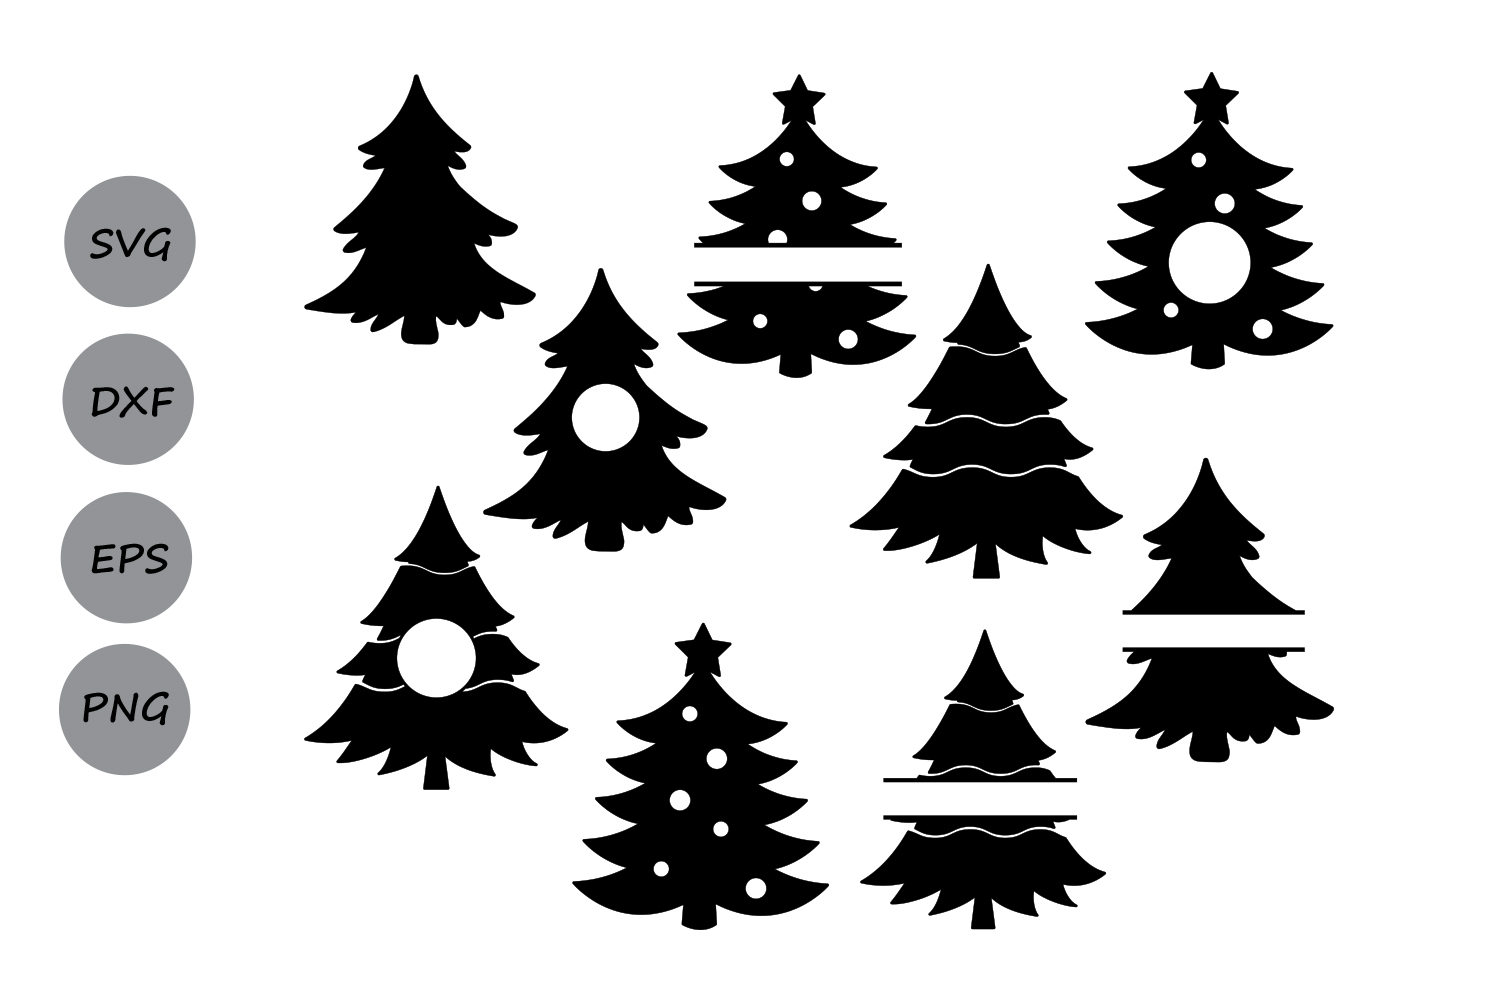 Christmas Tree Svg, Christmas Tree Monogram Svg, Christmas